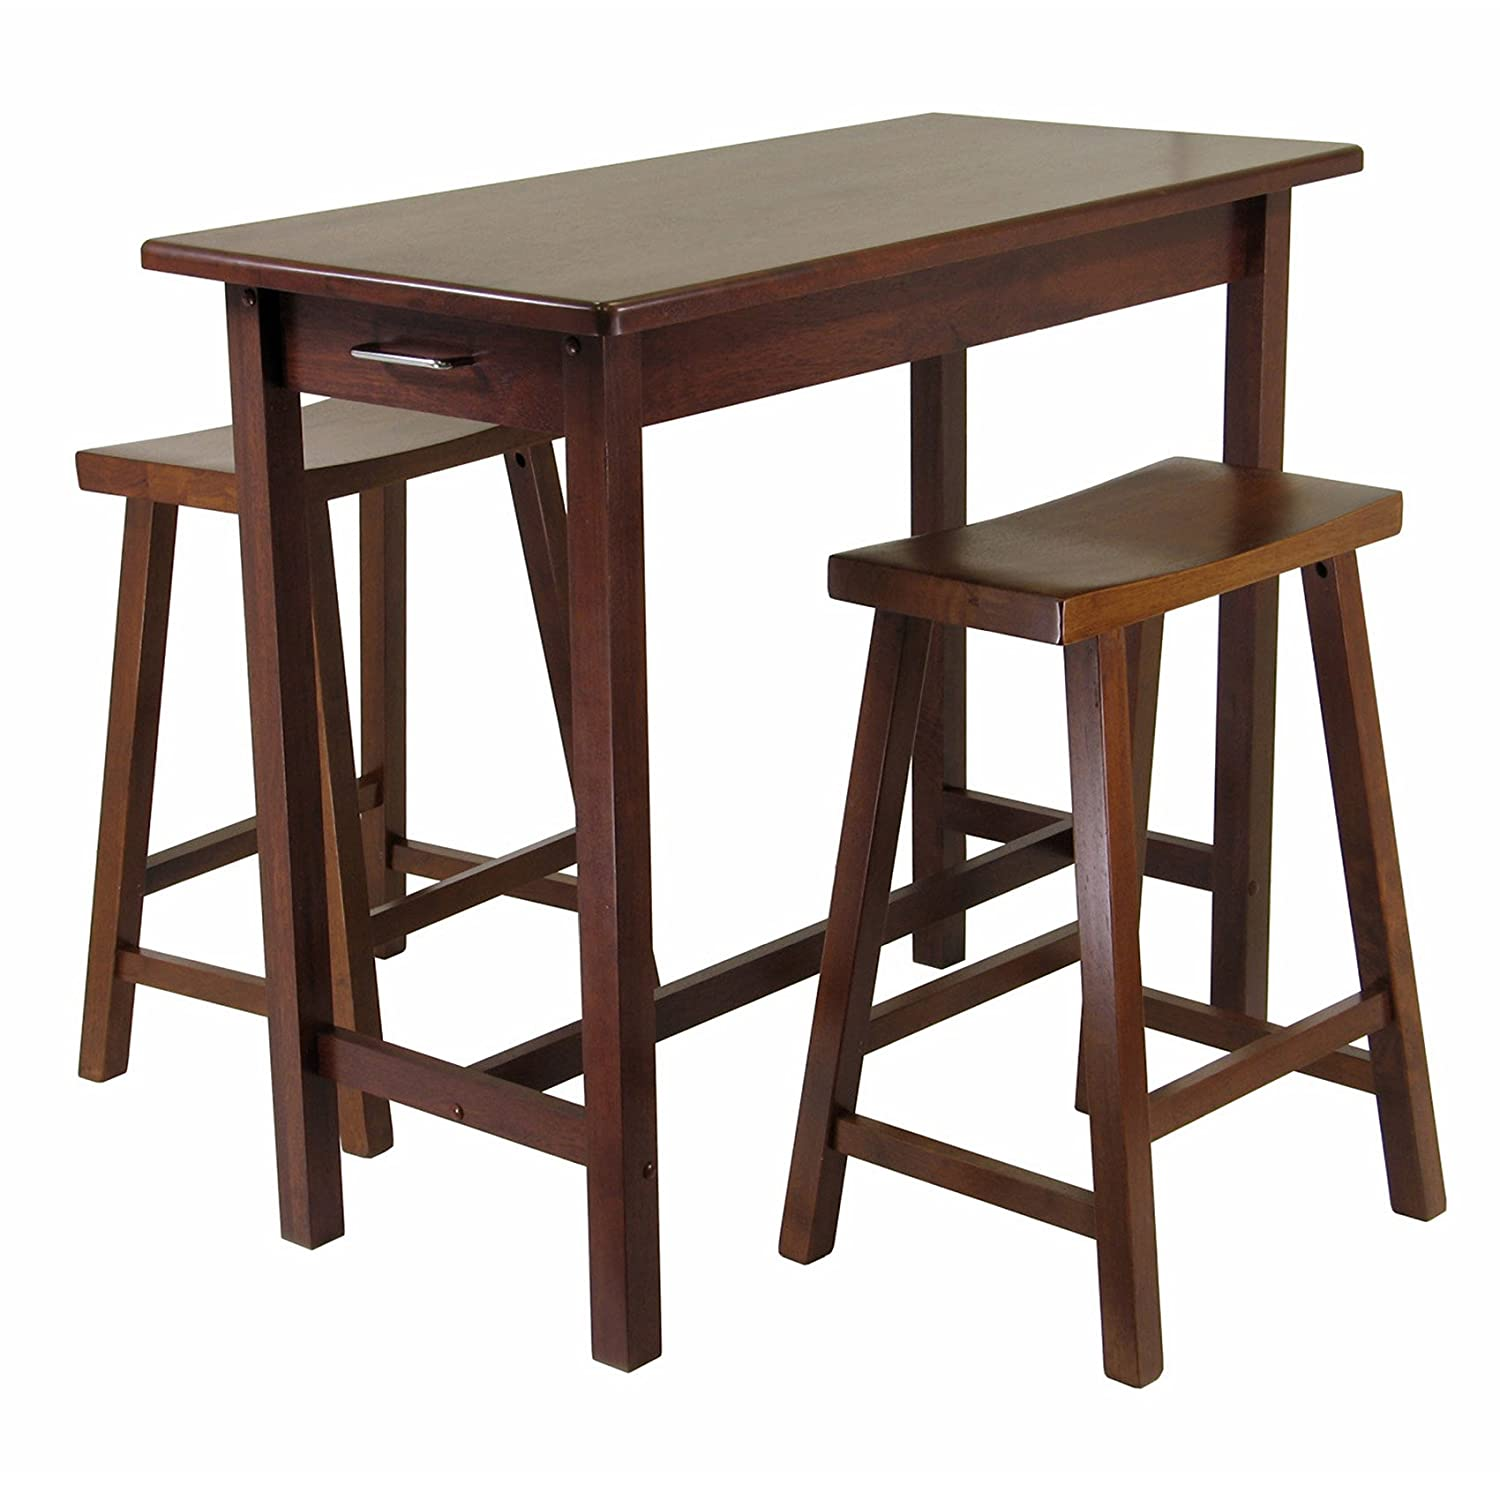 Amazon.com - Winsome Kitchen Island Table with 2 Drawers and Saddle Stools 3-Piece - Kitchen Islands u0026 Carts  sc 1 st  Amazon.com & Amazon.com - Winsome Kitchen Island Table with 2 Drawers and ... islam-shia.org